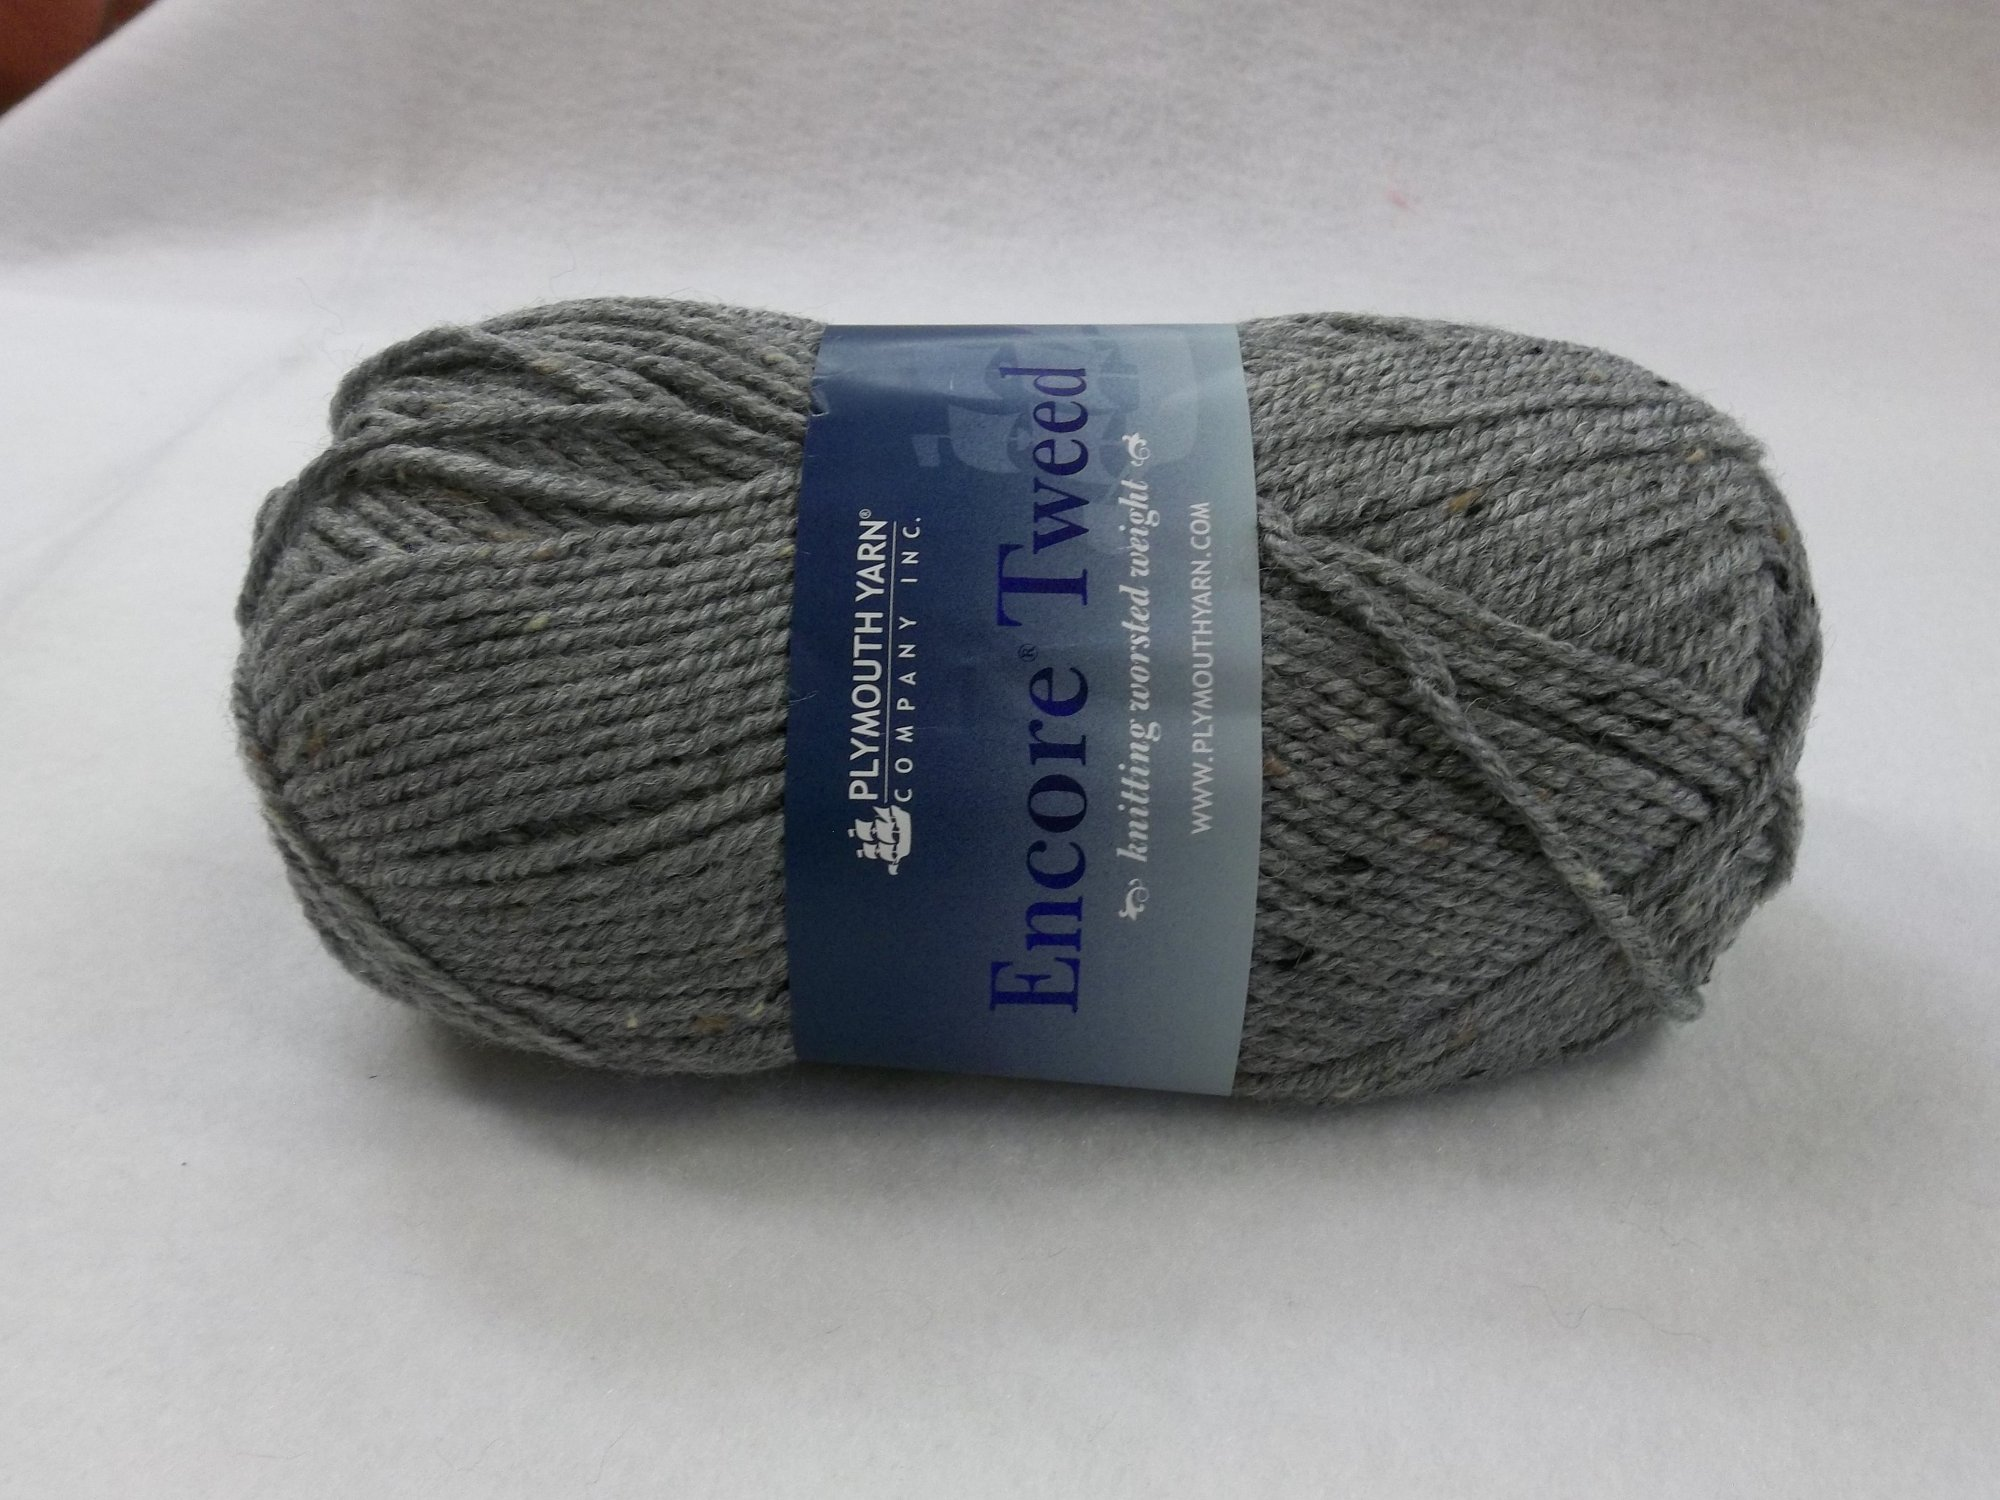 Encore Tweed - Worsted - T789 - Medium Gray